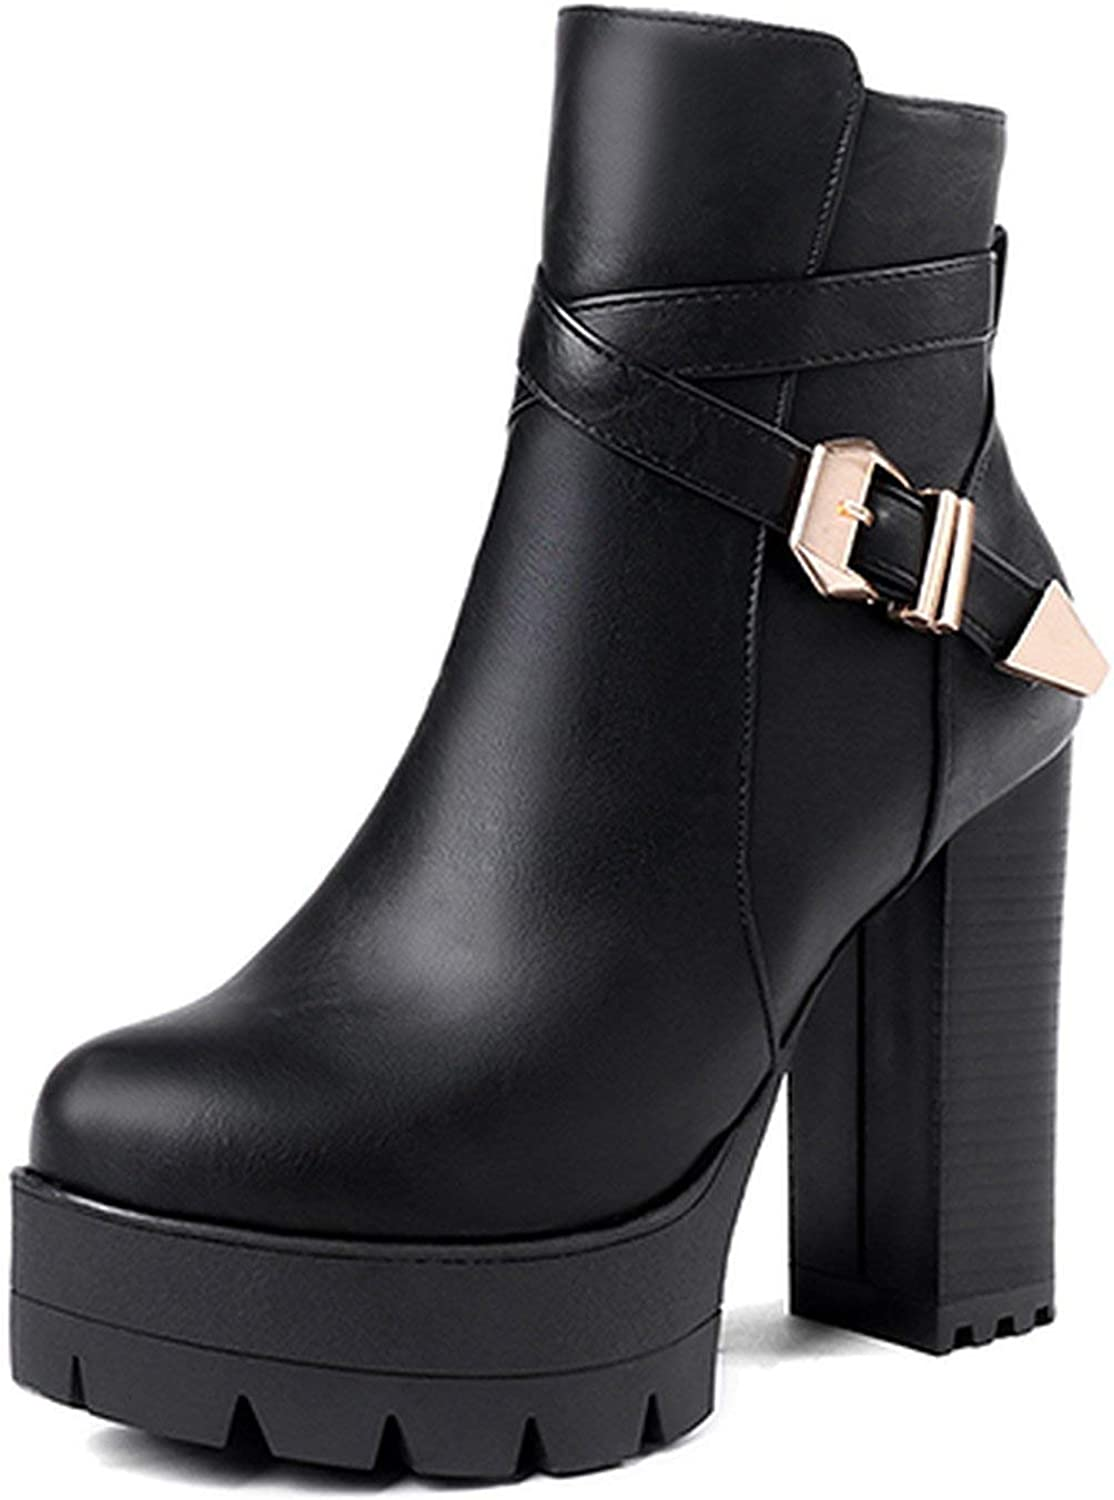 Summer-lavender Autumn Platform Ankle Boots Woman Black Leather shoes High Heels Boots shoes for 34-43